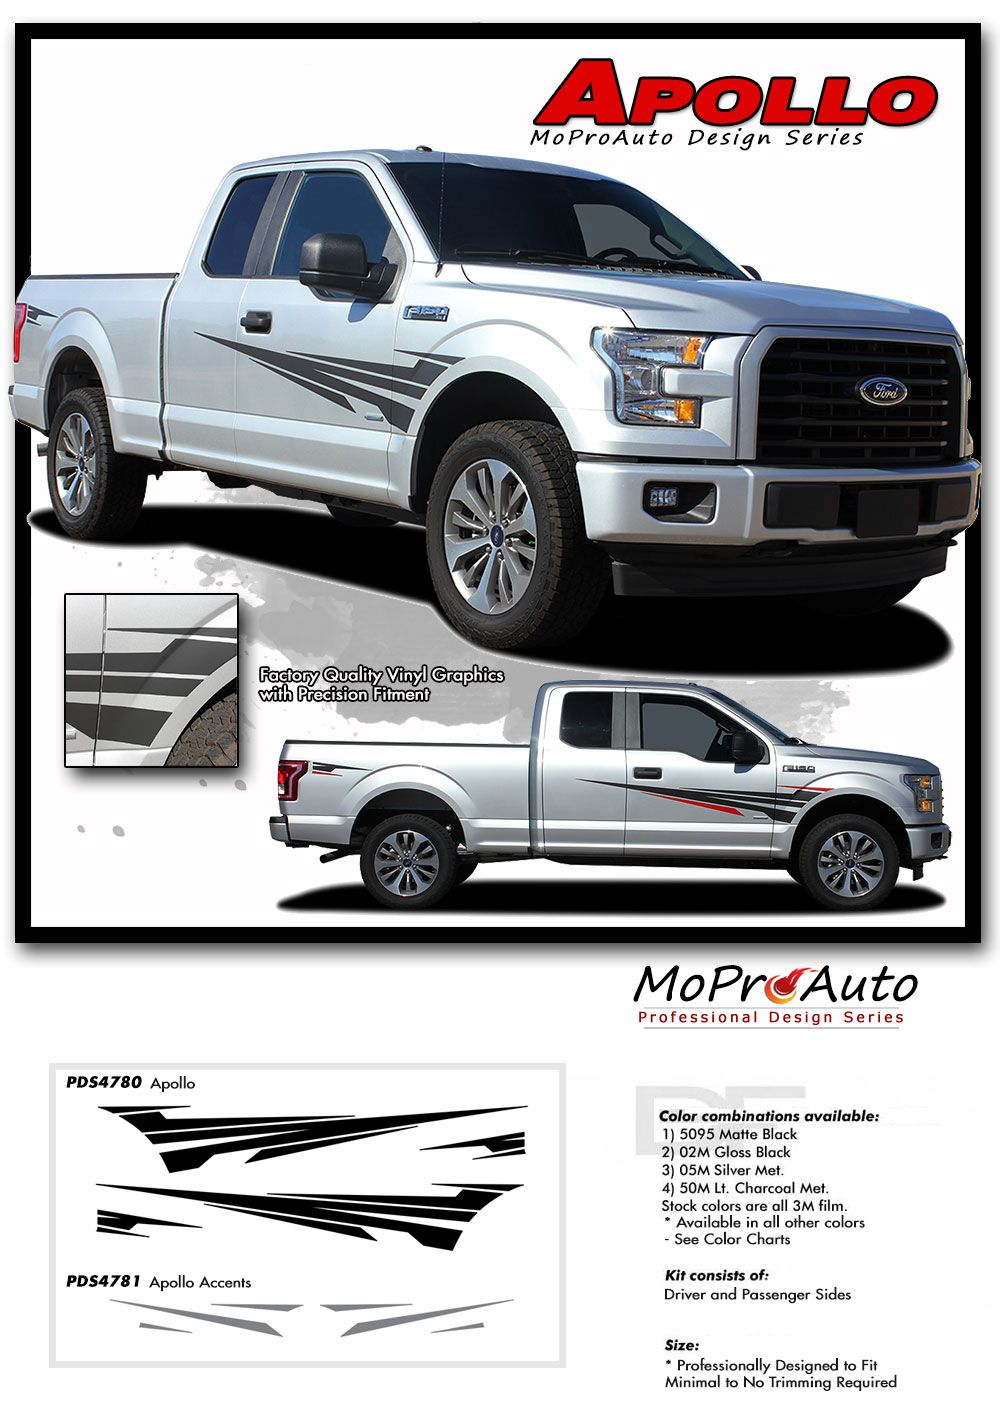 Apollo ford f series f 150 appearance package vinyl graphics and decals kit by